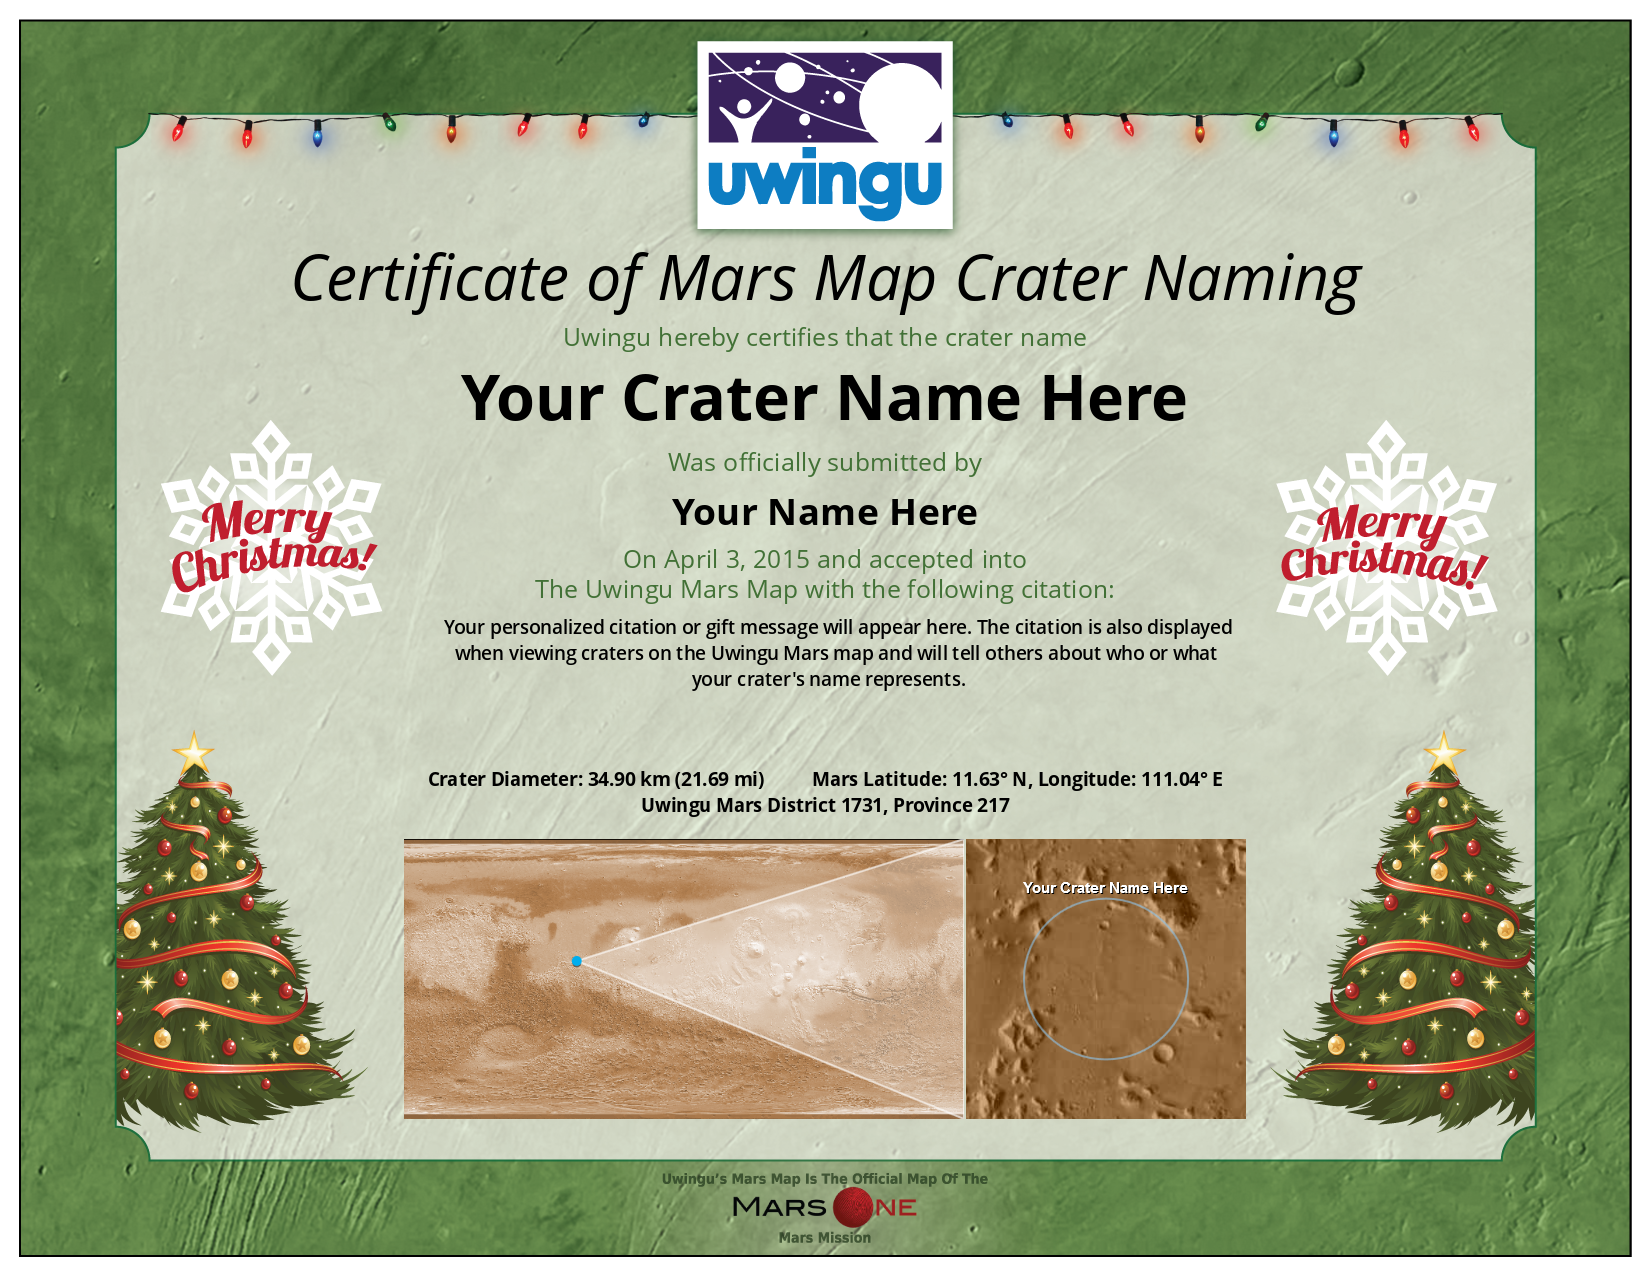 Mars Crater Naming Certificates Uwingu